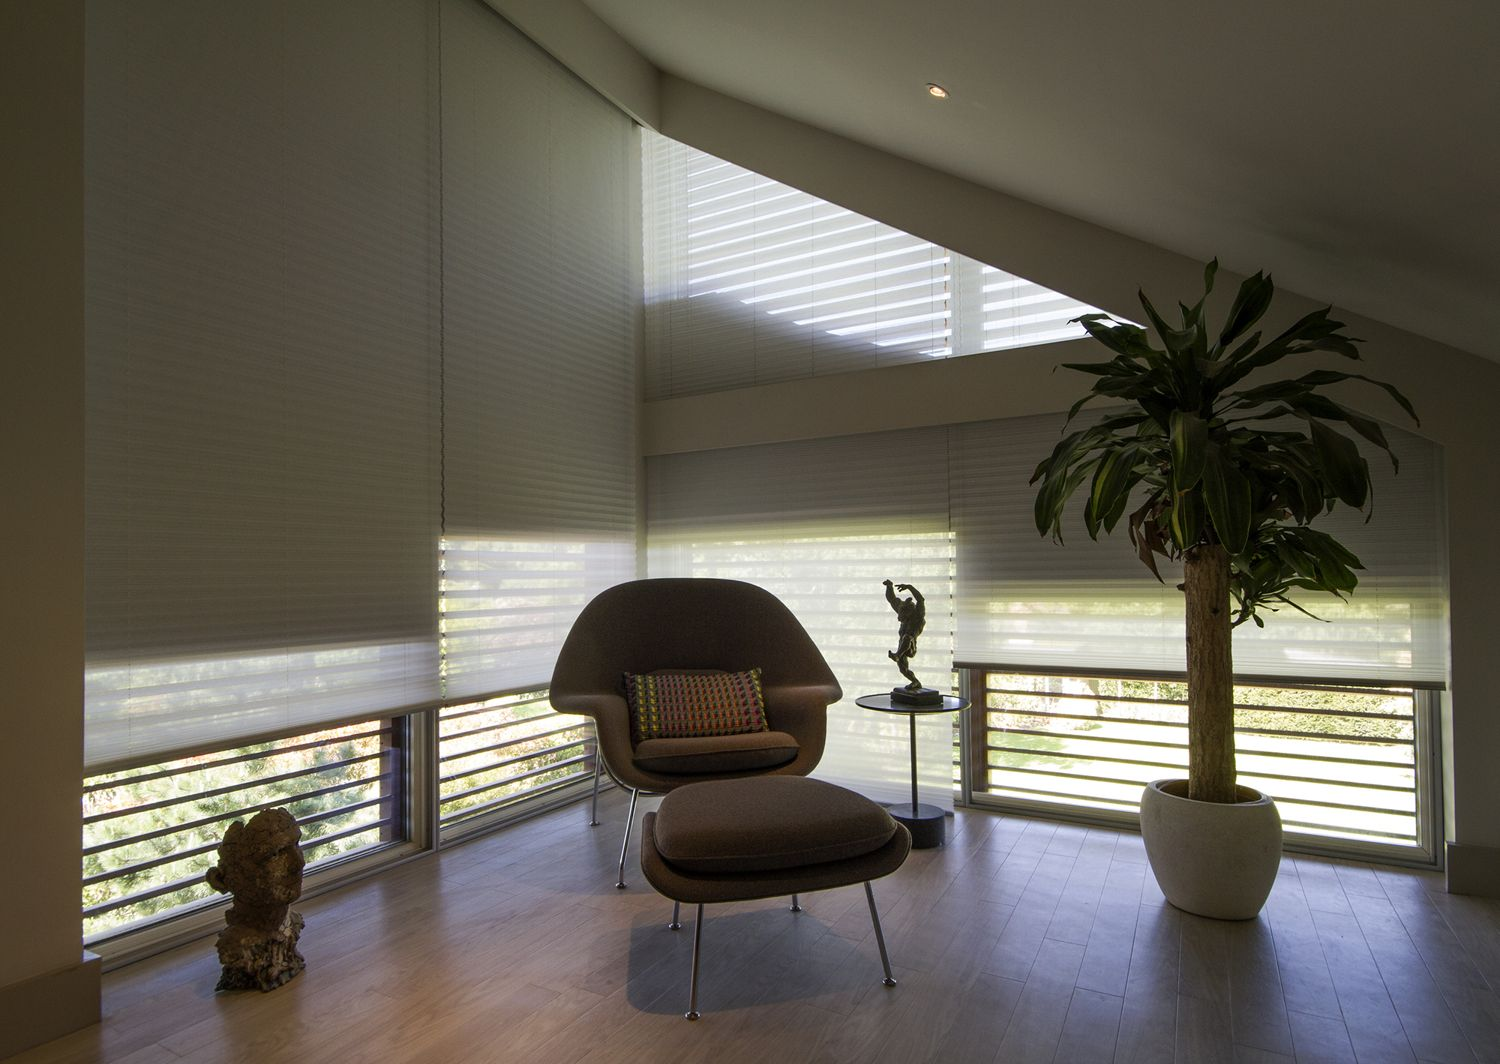 01 - Corner-with-double-blinds.jpg